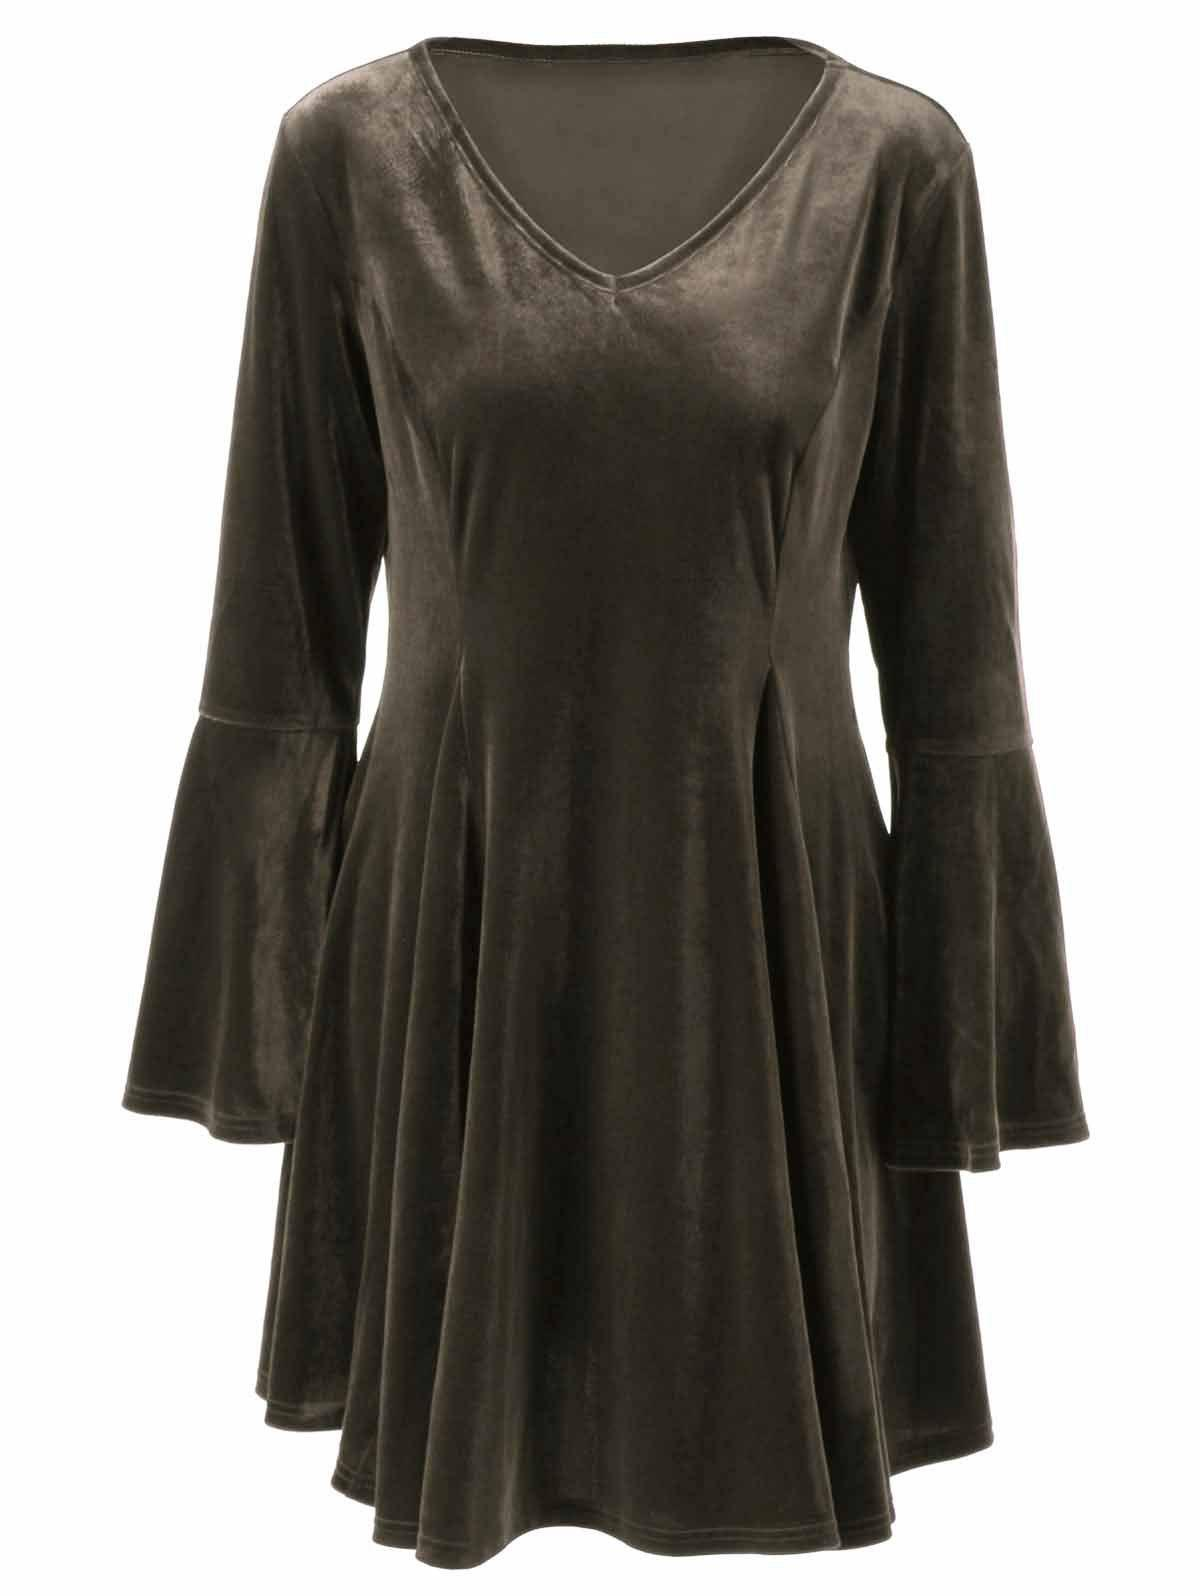 Flare Long Sleeve Velvet Skater Cocktail DressWOMEN<br><br>Size: 4XL; Color: BRONZE; Style: Brief; Material: Polyester,Spandex; Silhouette: A-Line; Dresses Length: Mini; Neckline: V-Neck; Sleeve Length: Long Sleeves; Pattern Type: Solid; With Belt: No; Season: Fall,Spring,Winter; Weight: 0.420kg; Package Contents: 1 x Dress;